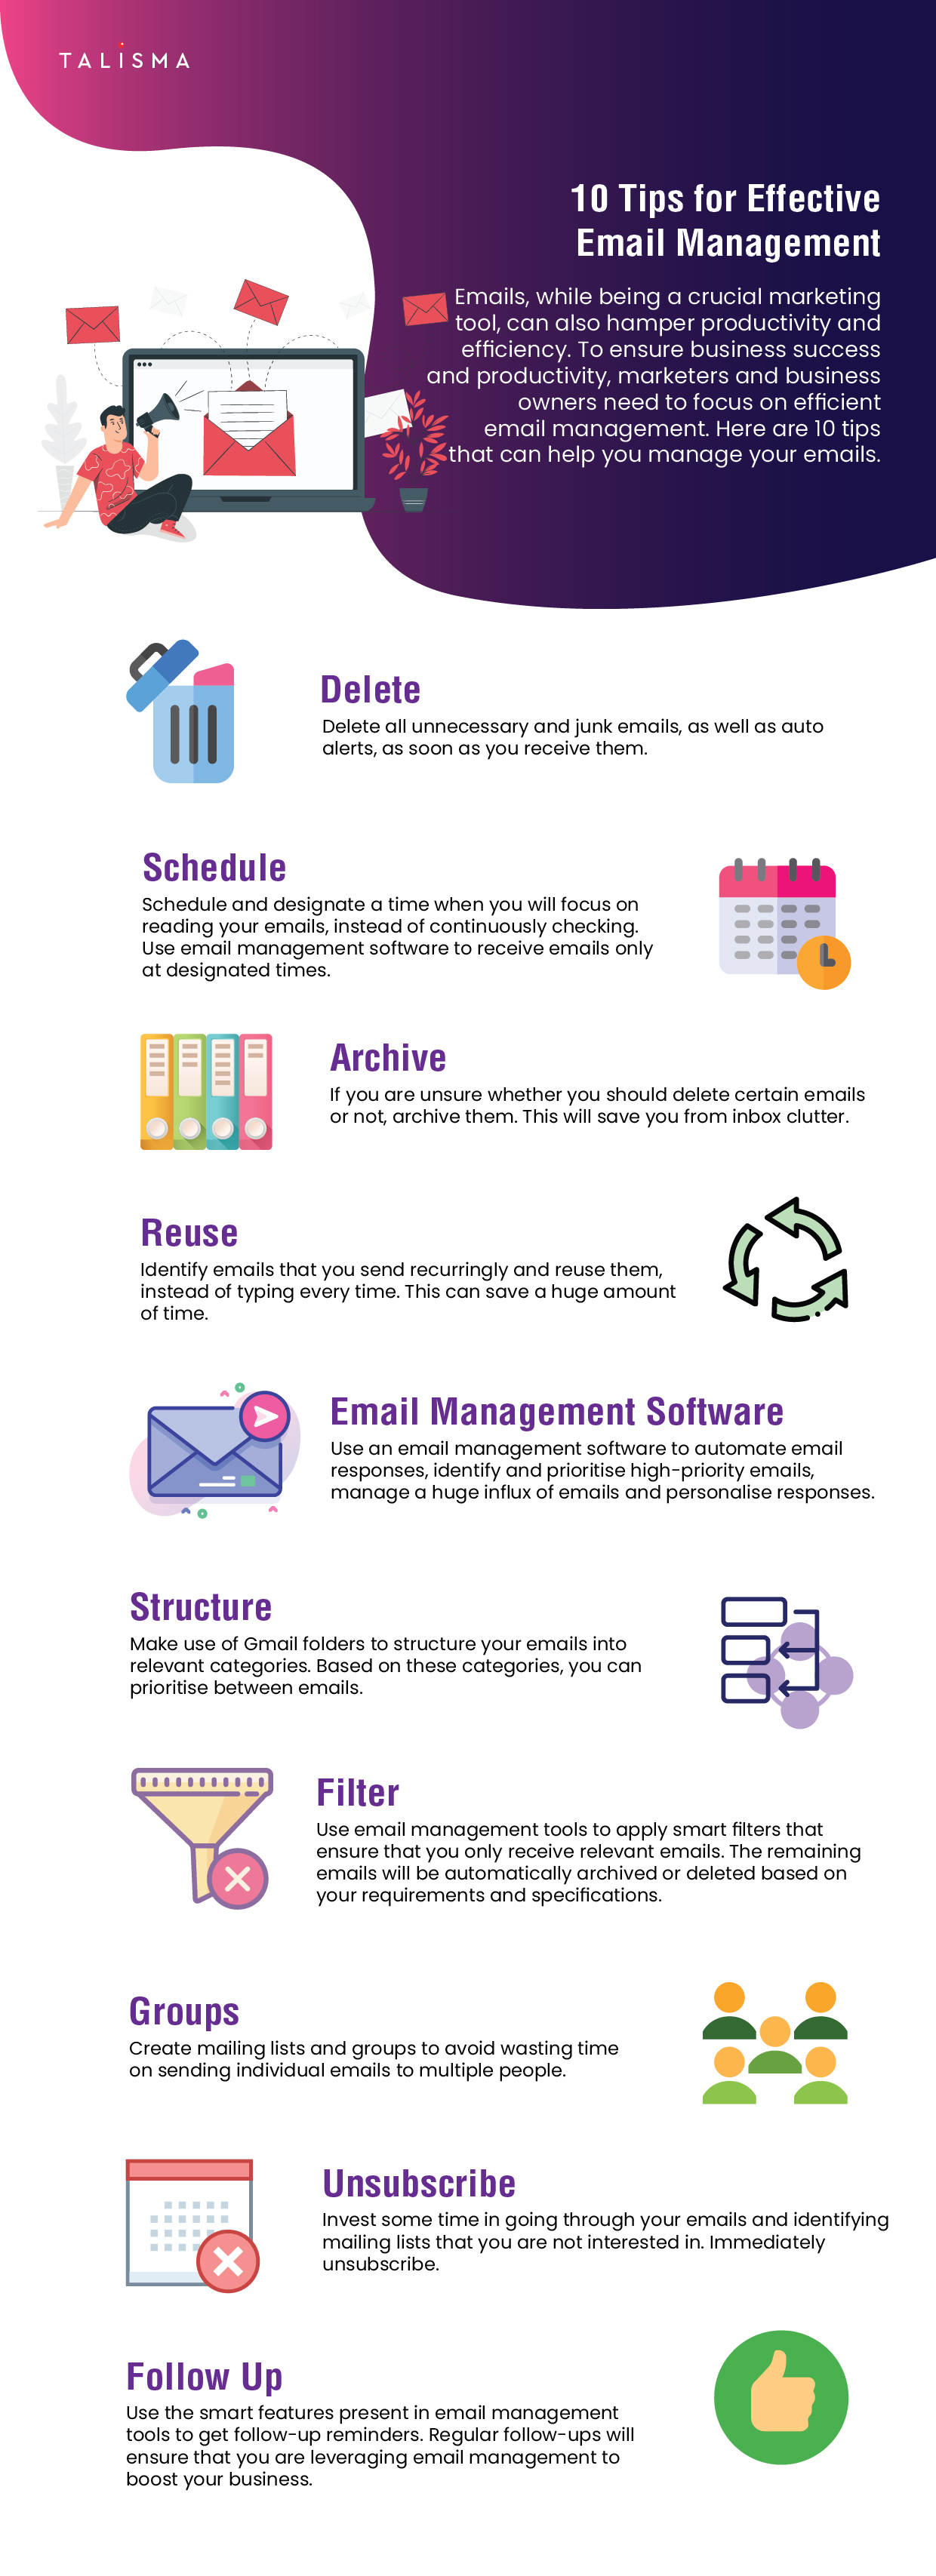 10 Tips for Effective Email Management